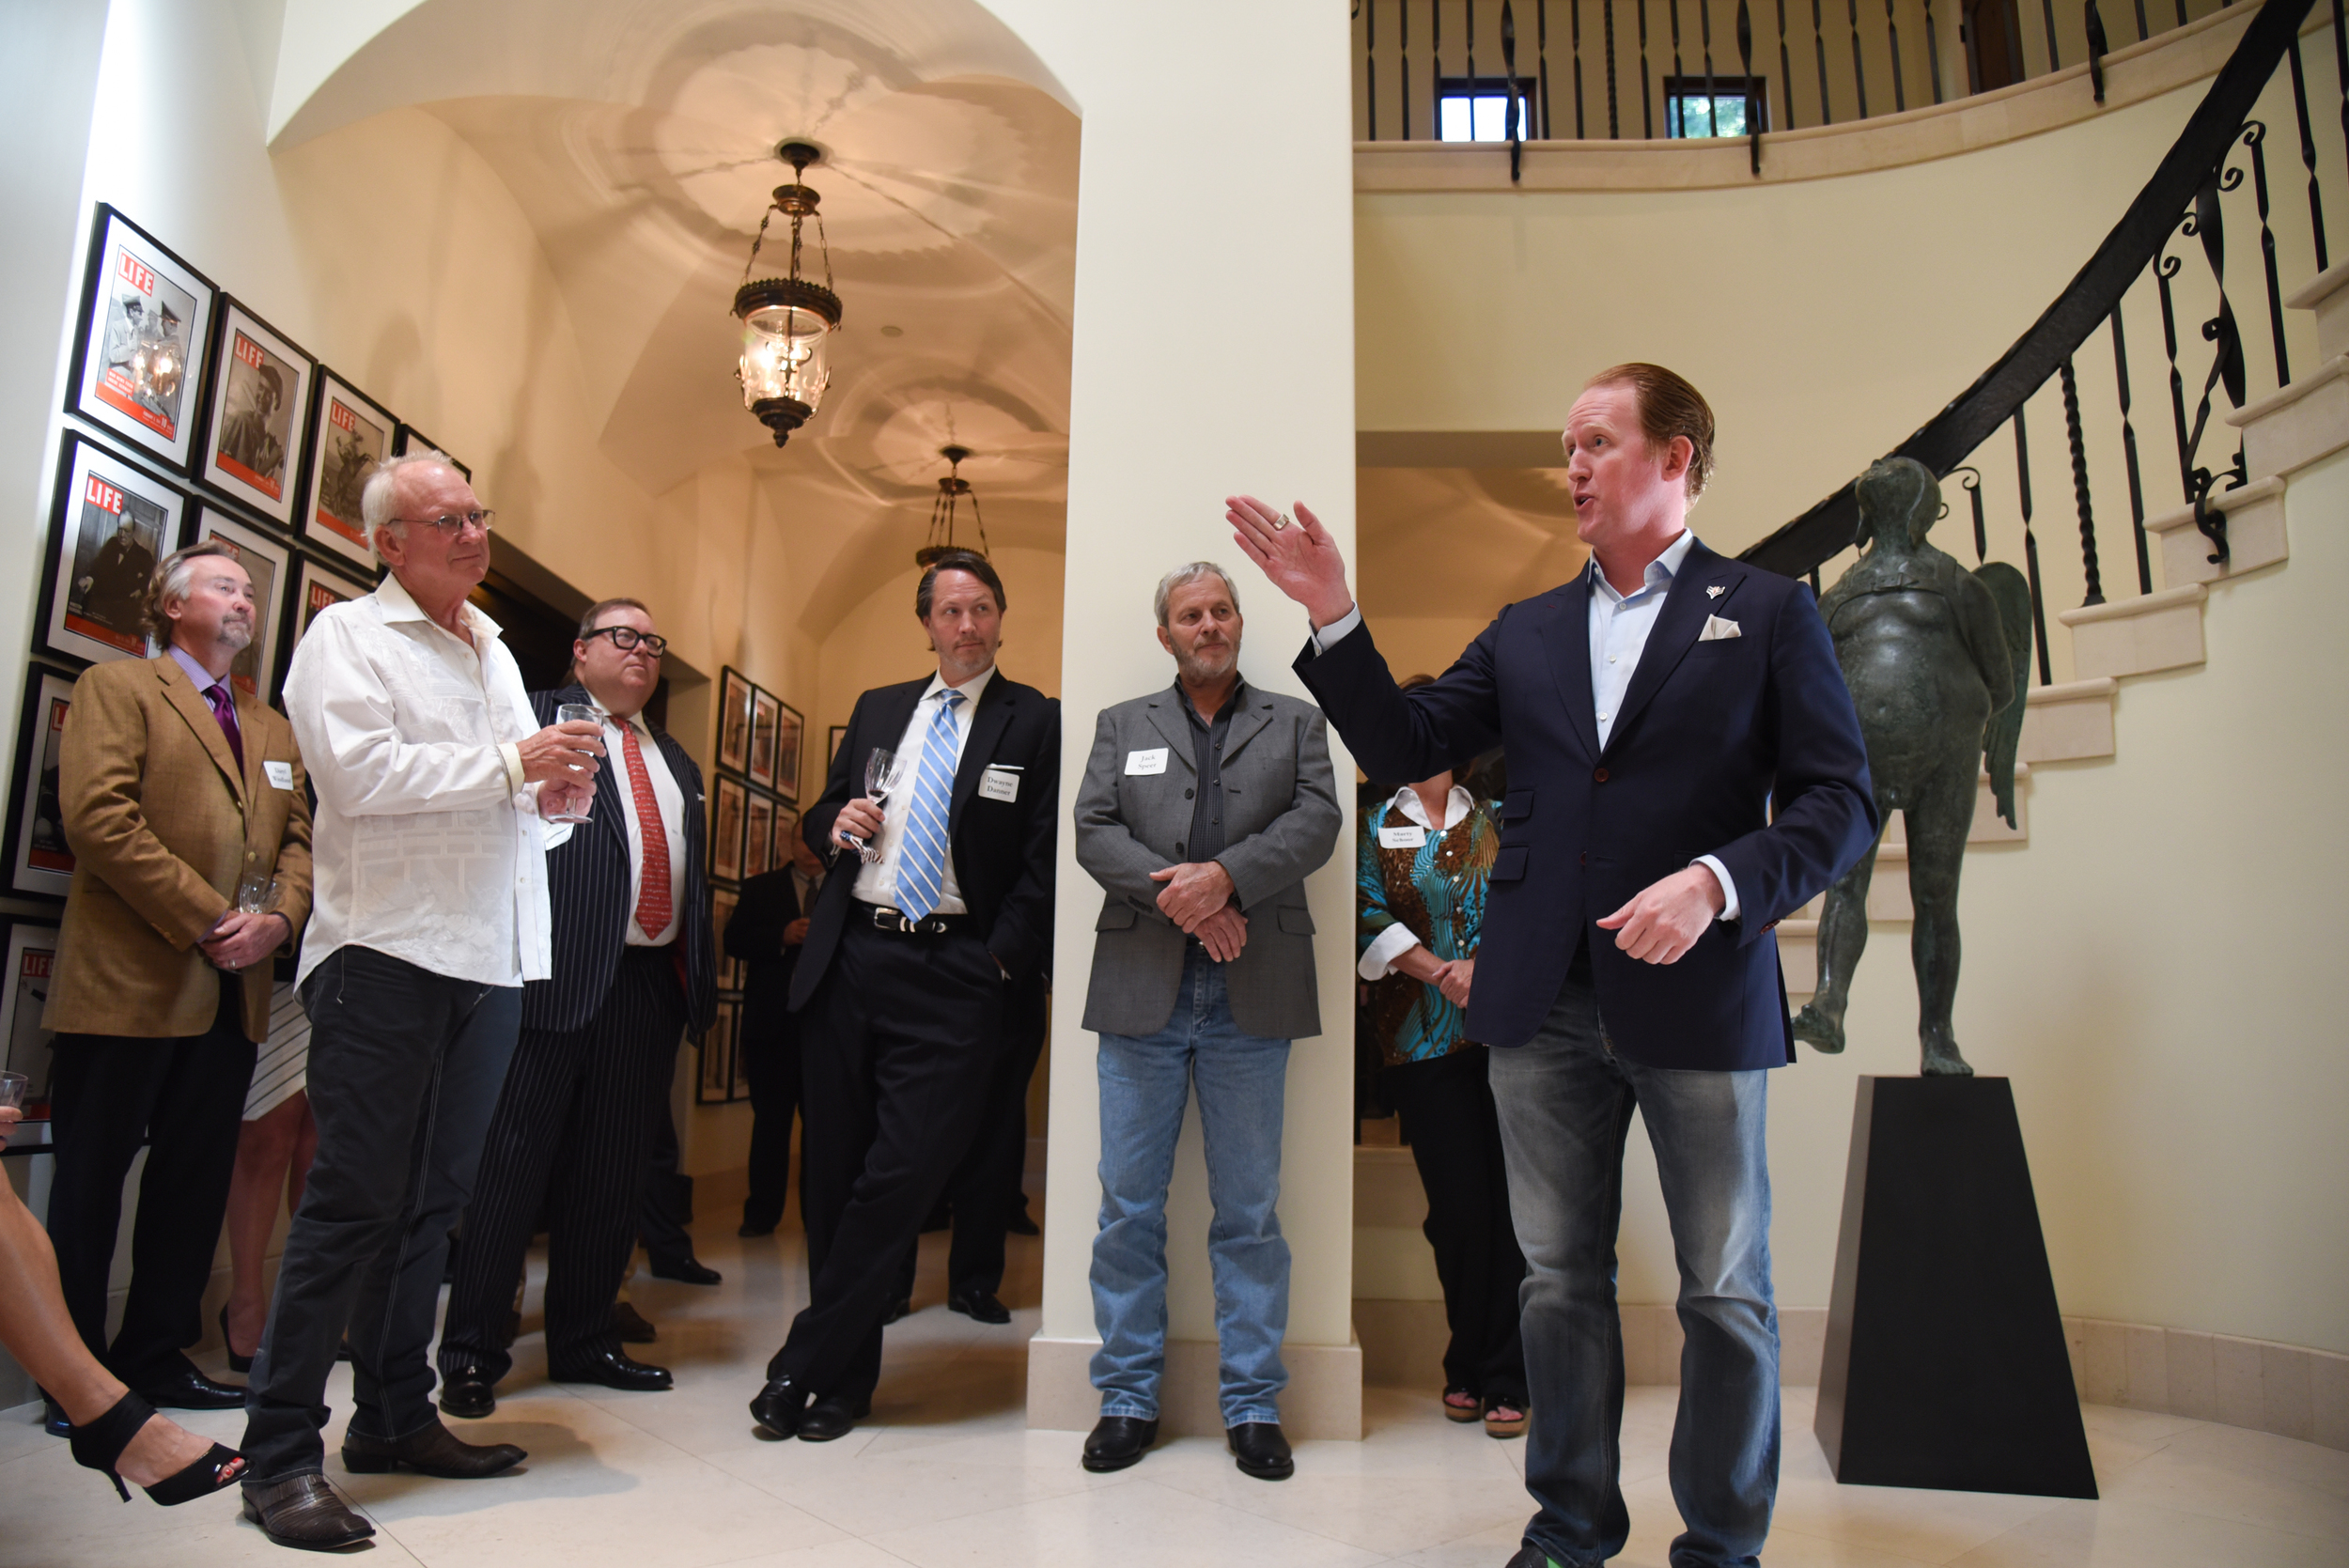 SEAL Team 6 hero, Rob O'Neill, gives remarks and attends the Ryan Zinke for Congress Dallas reception in 2016.